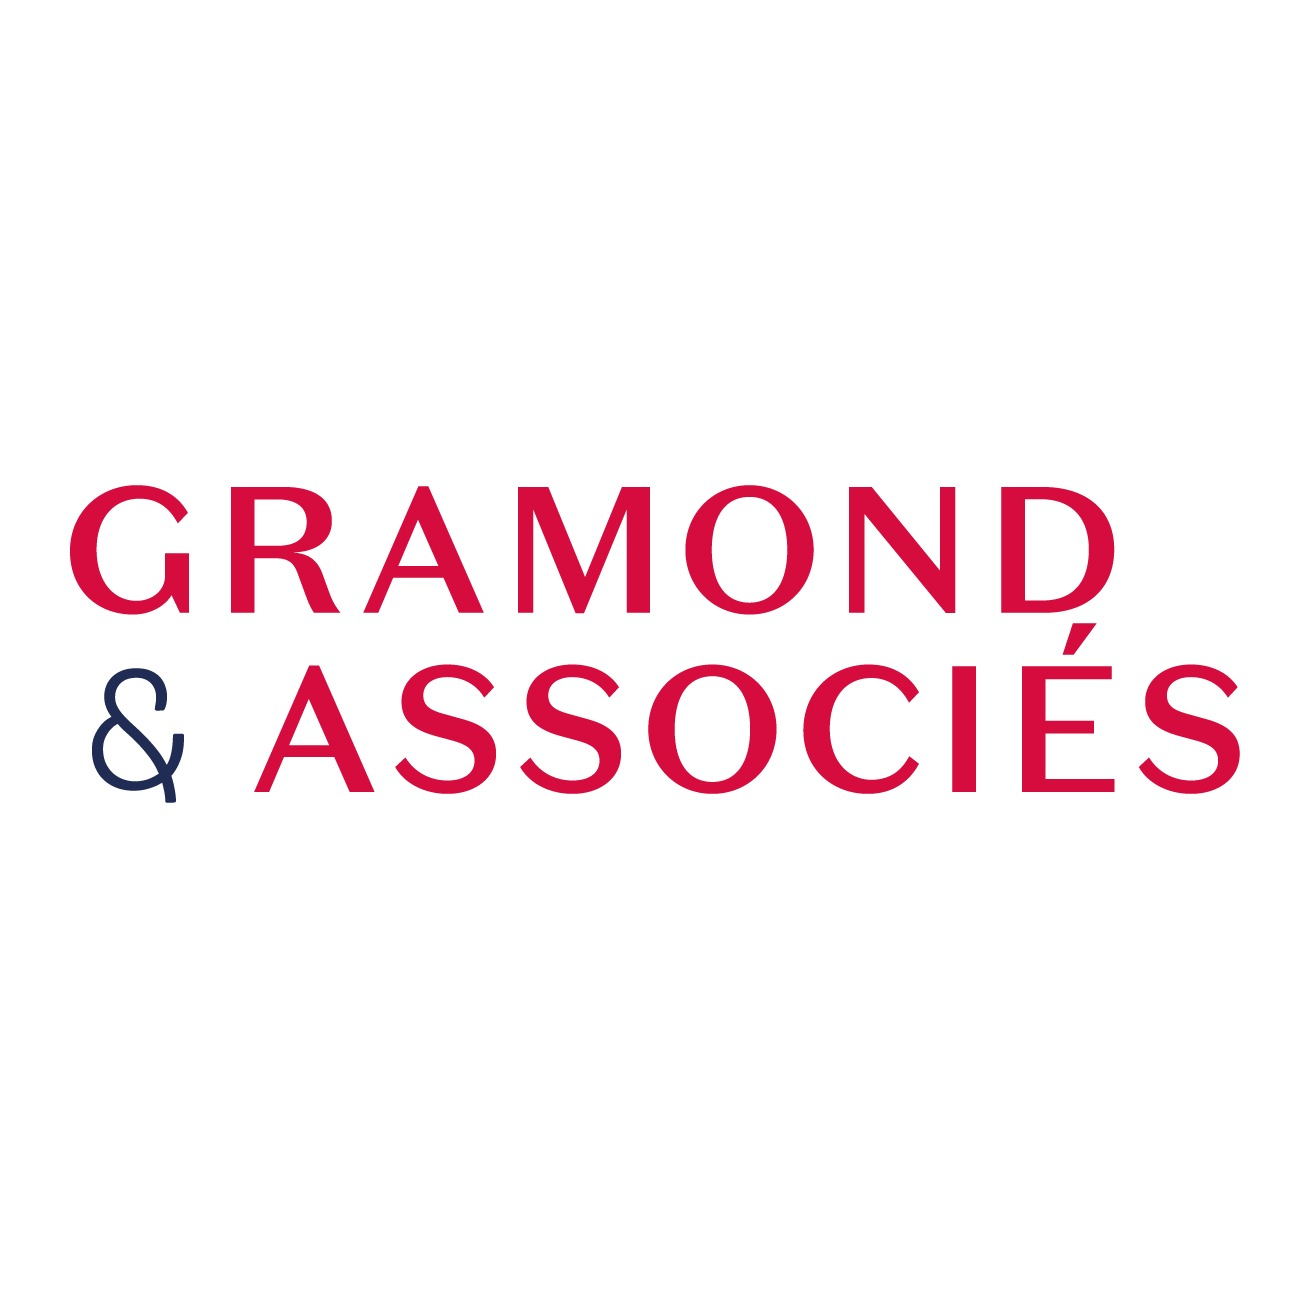 the Gramond & Associés logo.